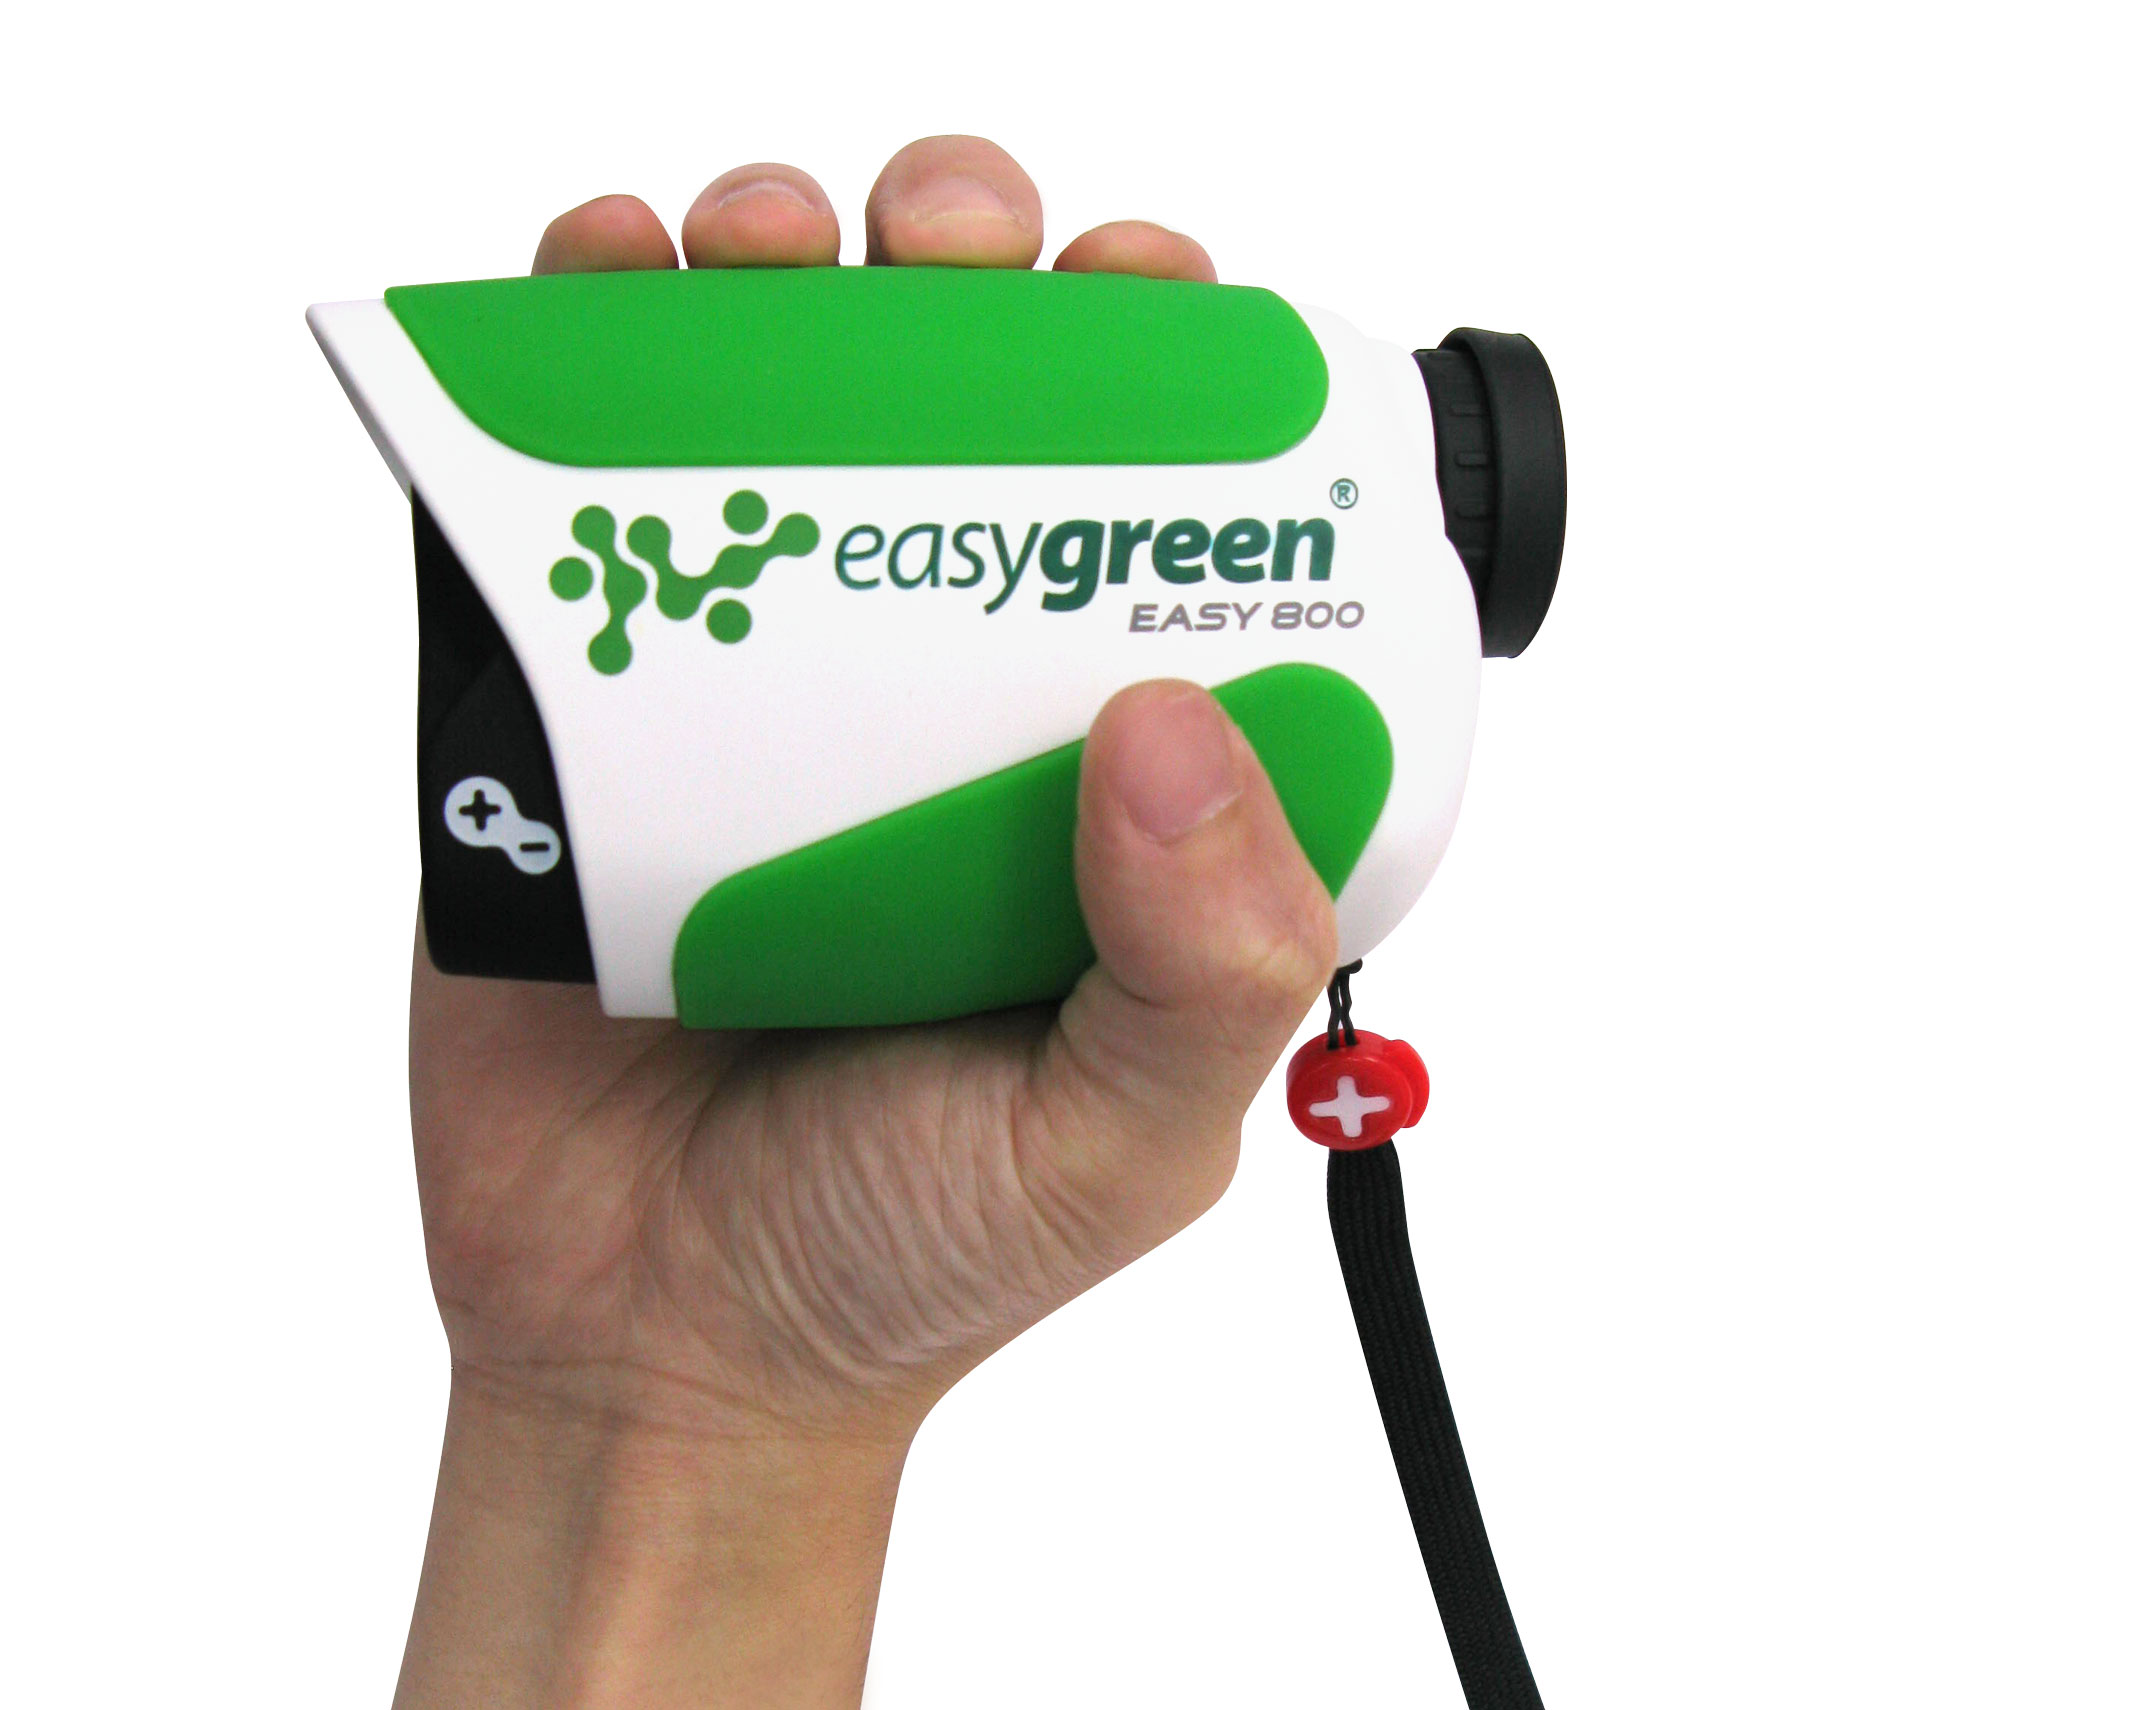 Easygreen EASY800 Side Lanyard.jpg